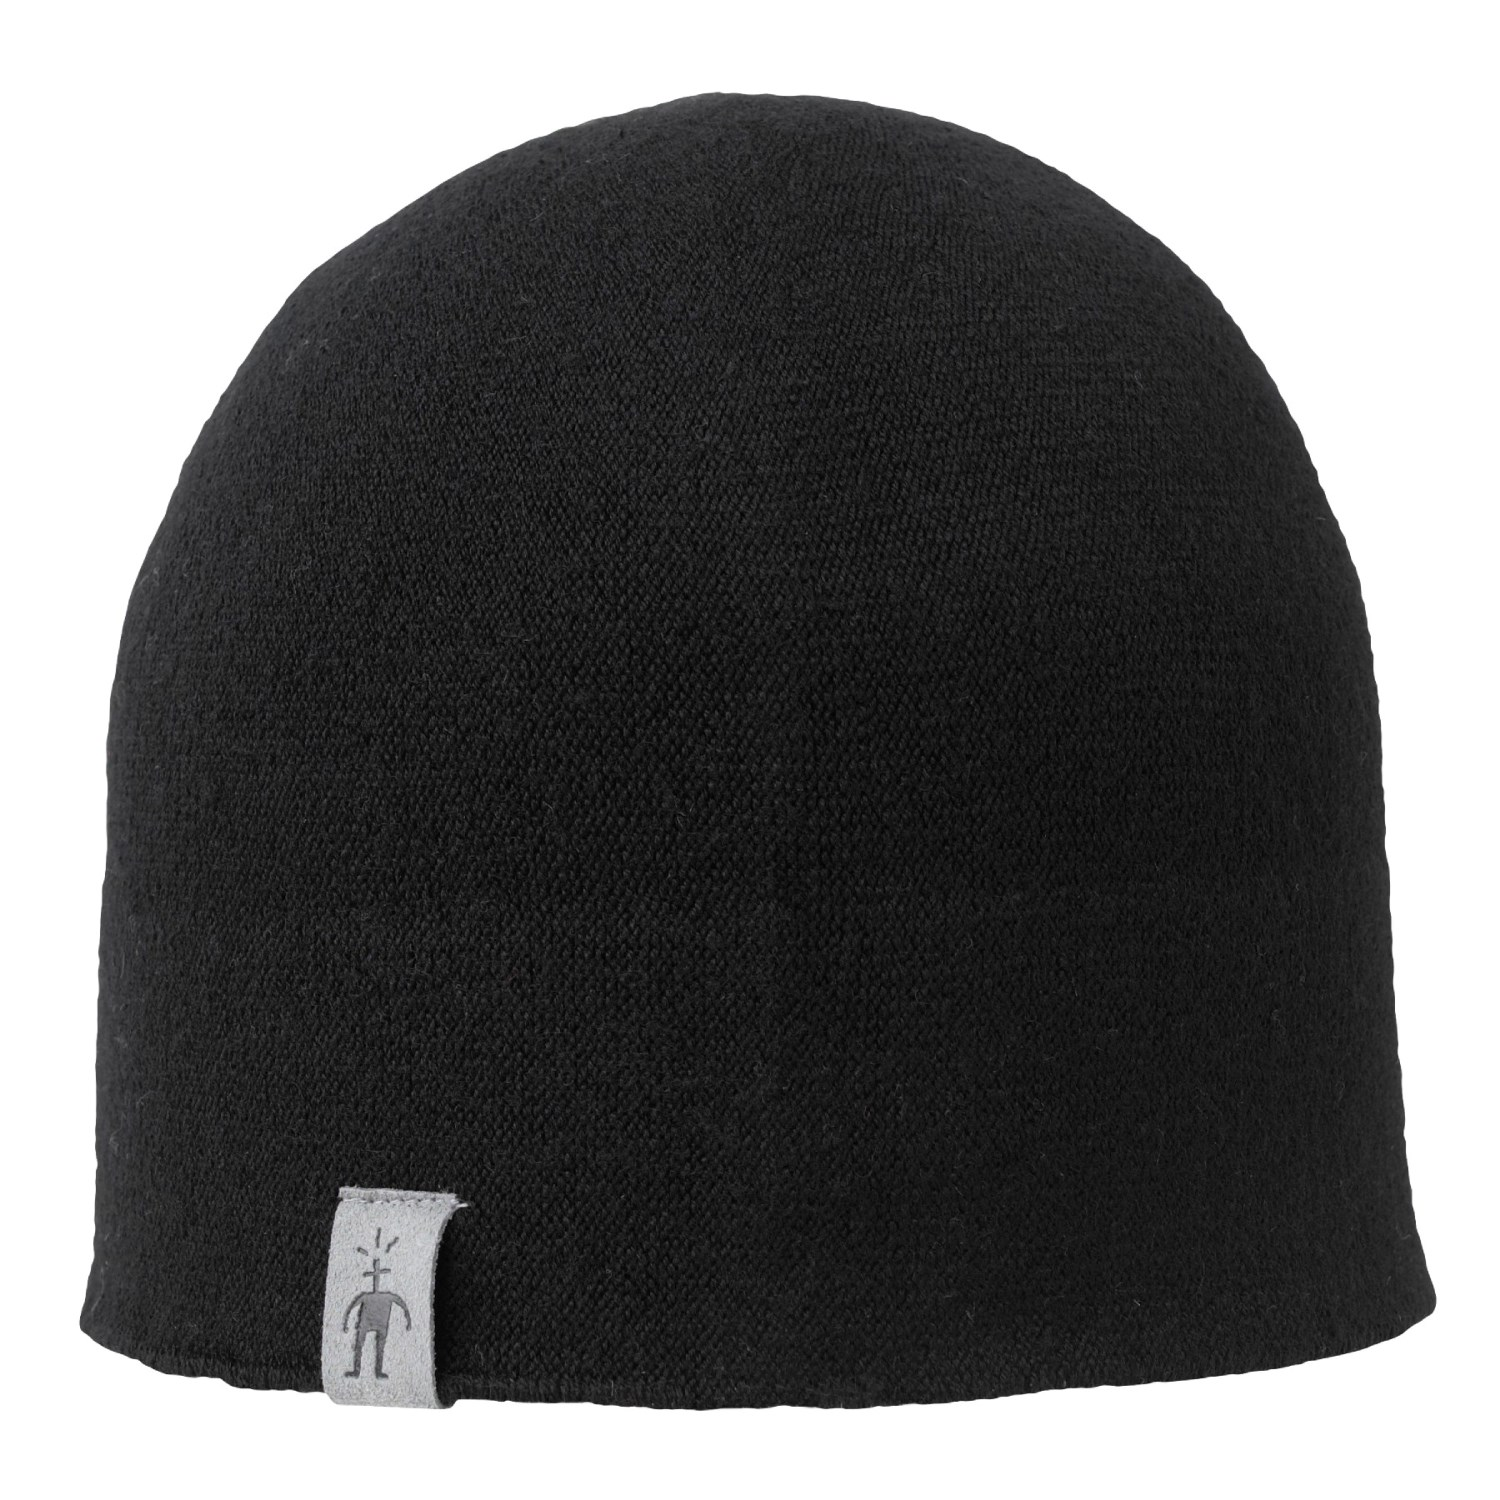 smartwool the lid beanie hat for and 3055c